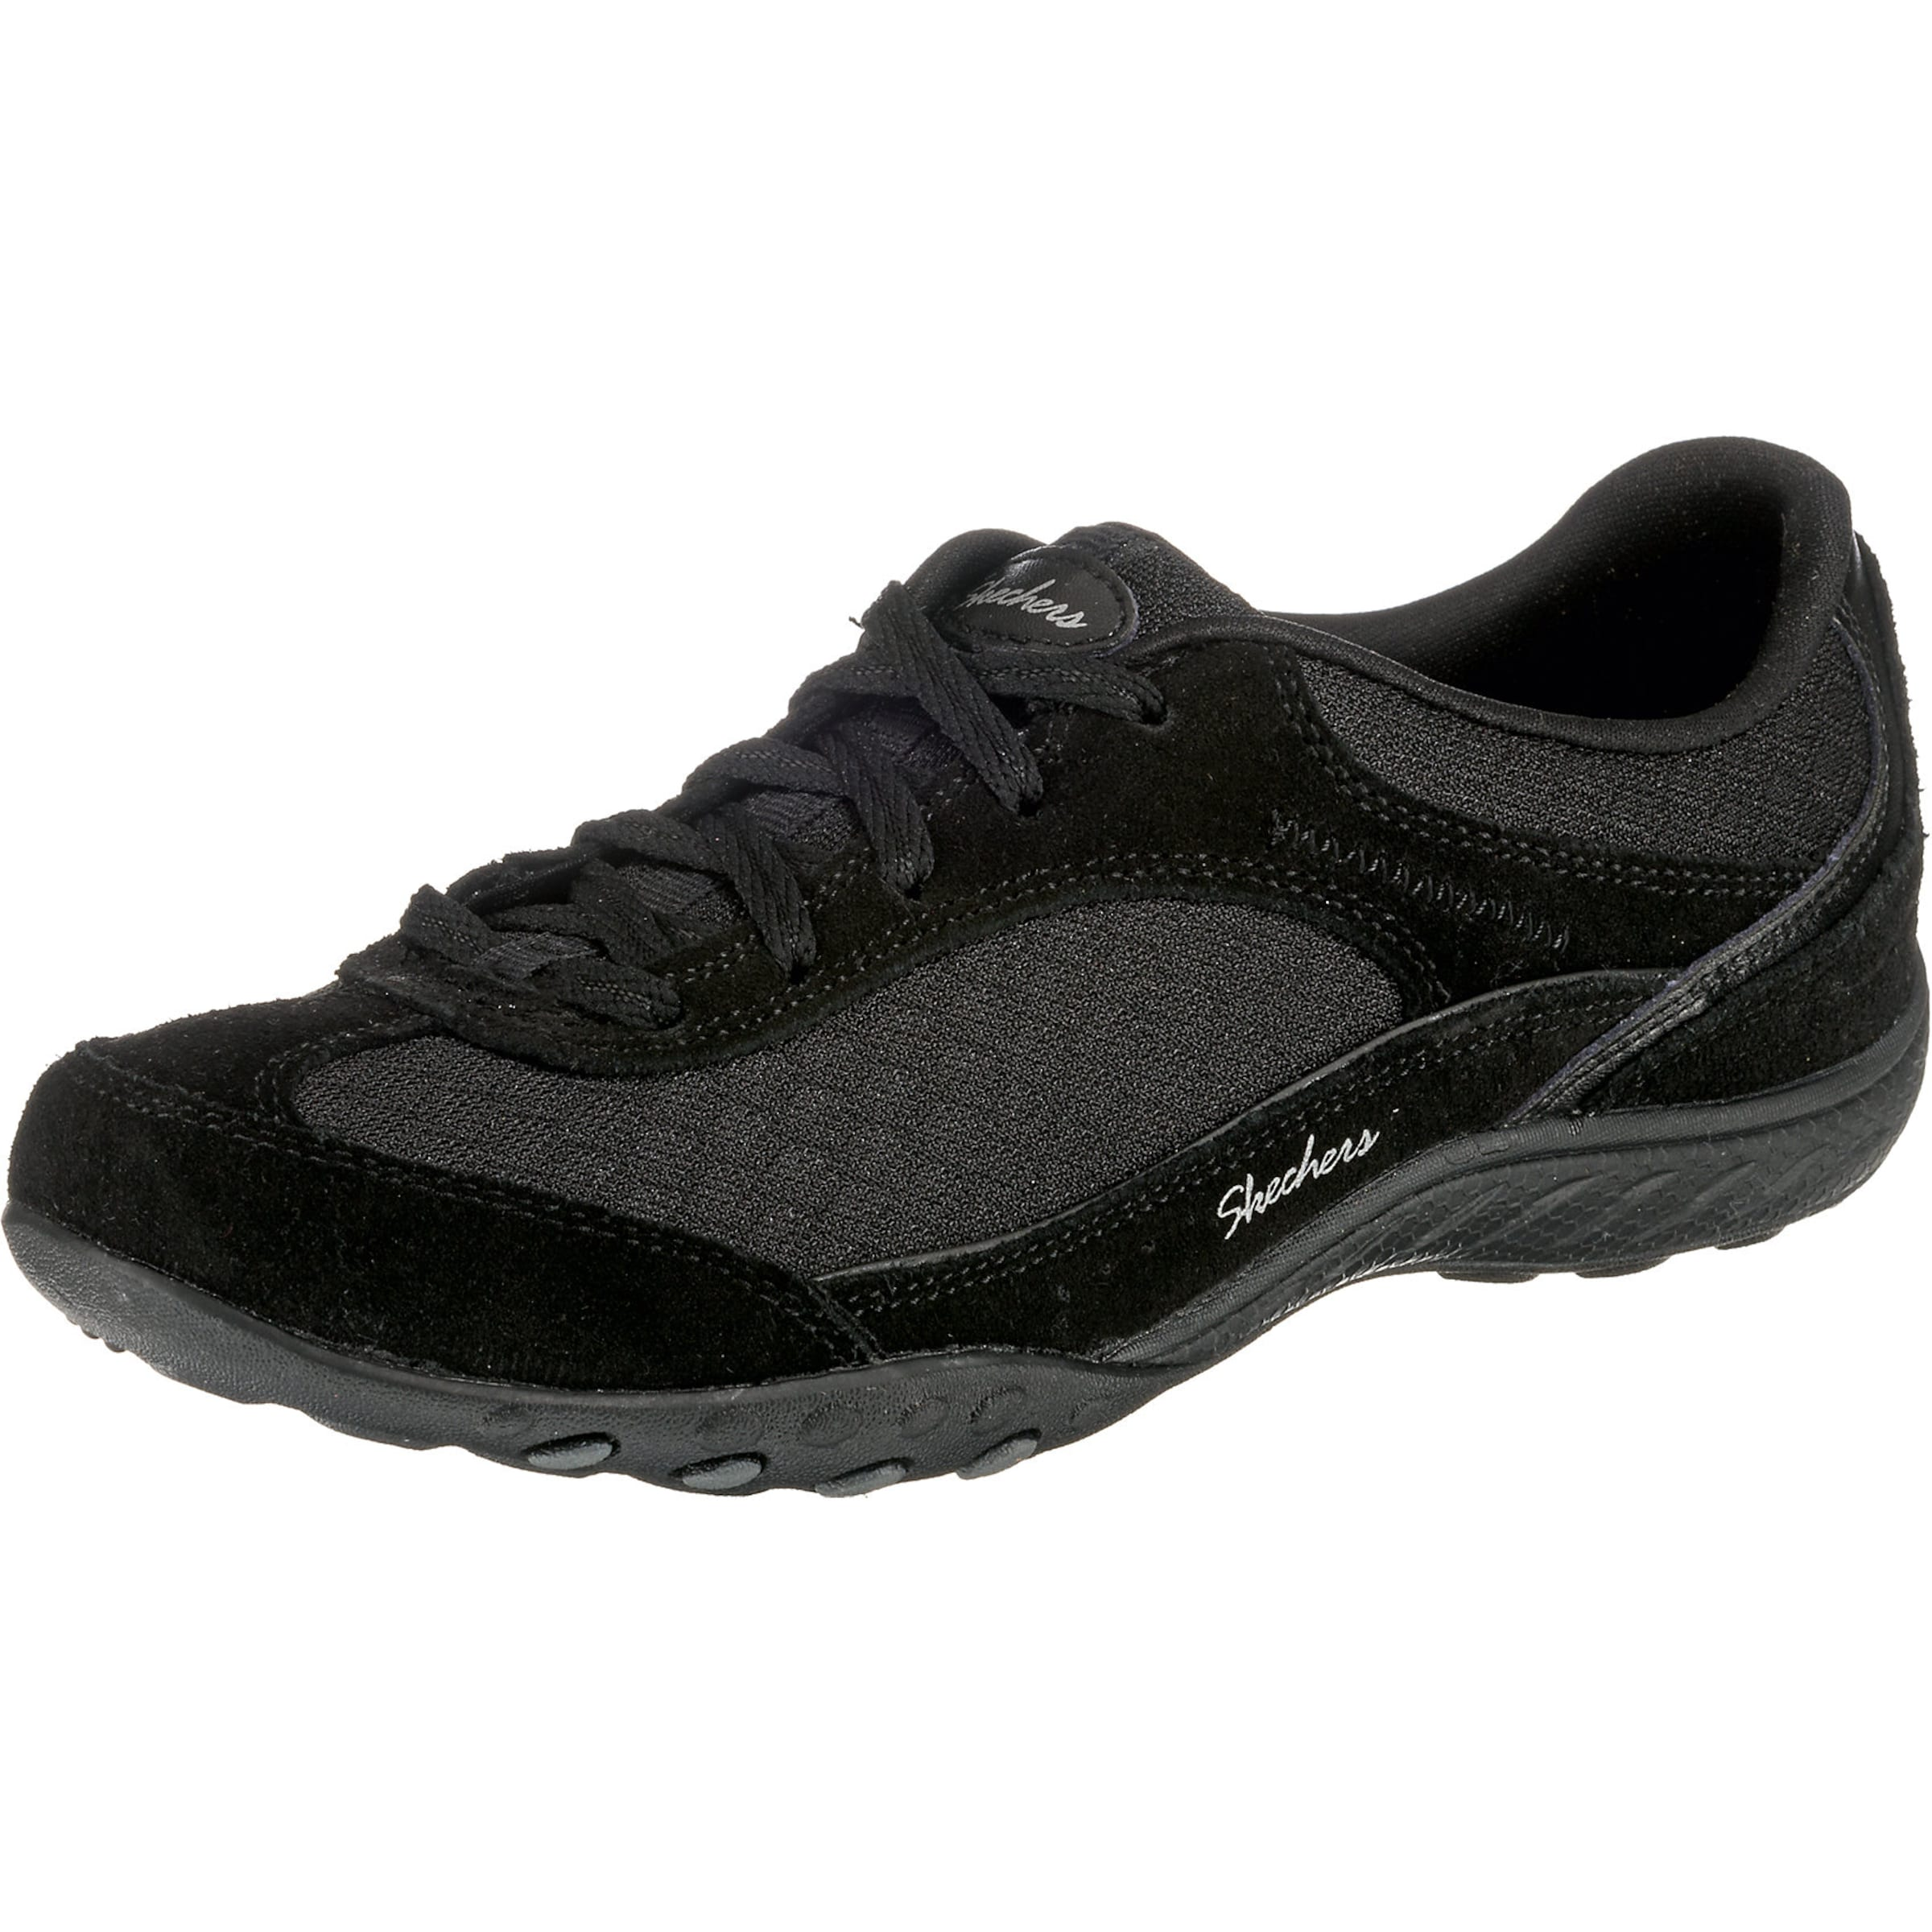 Sneaker Simply Skechers 'breathe easy In Sincere' Schwarz l13KcJ5uTF